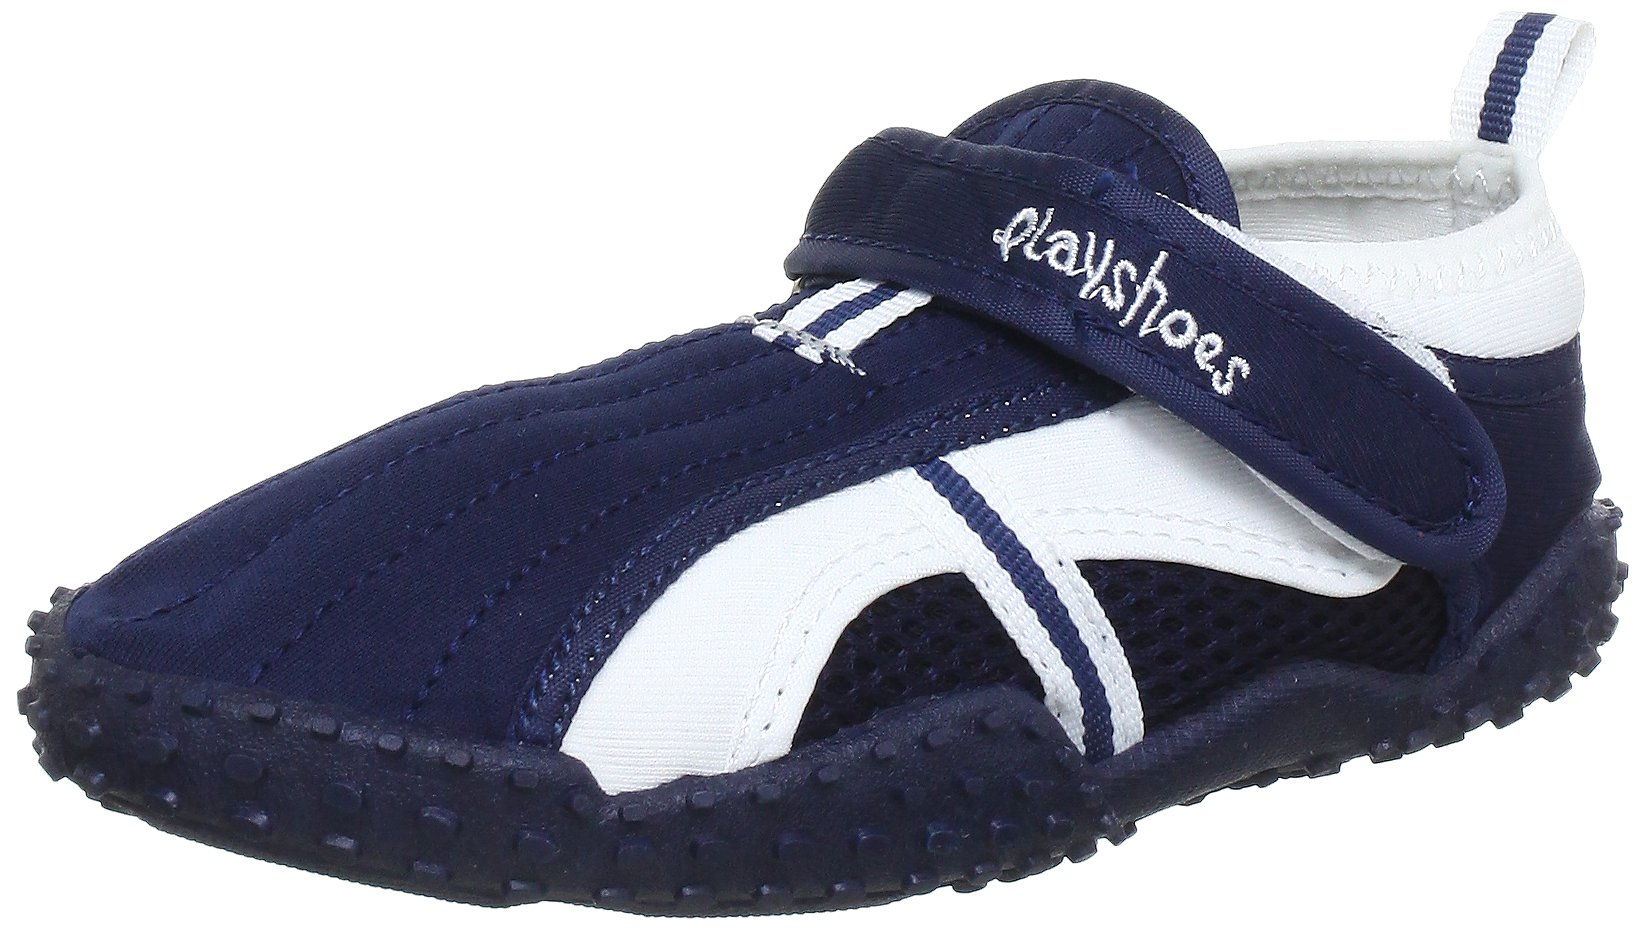 Playshoes Children's Aqua Beach Water Shoes (8.5 M US Toddler, Navy) by Playshoes (Image #2)